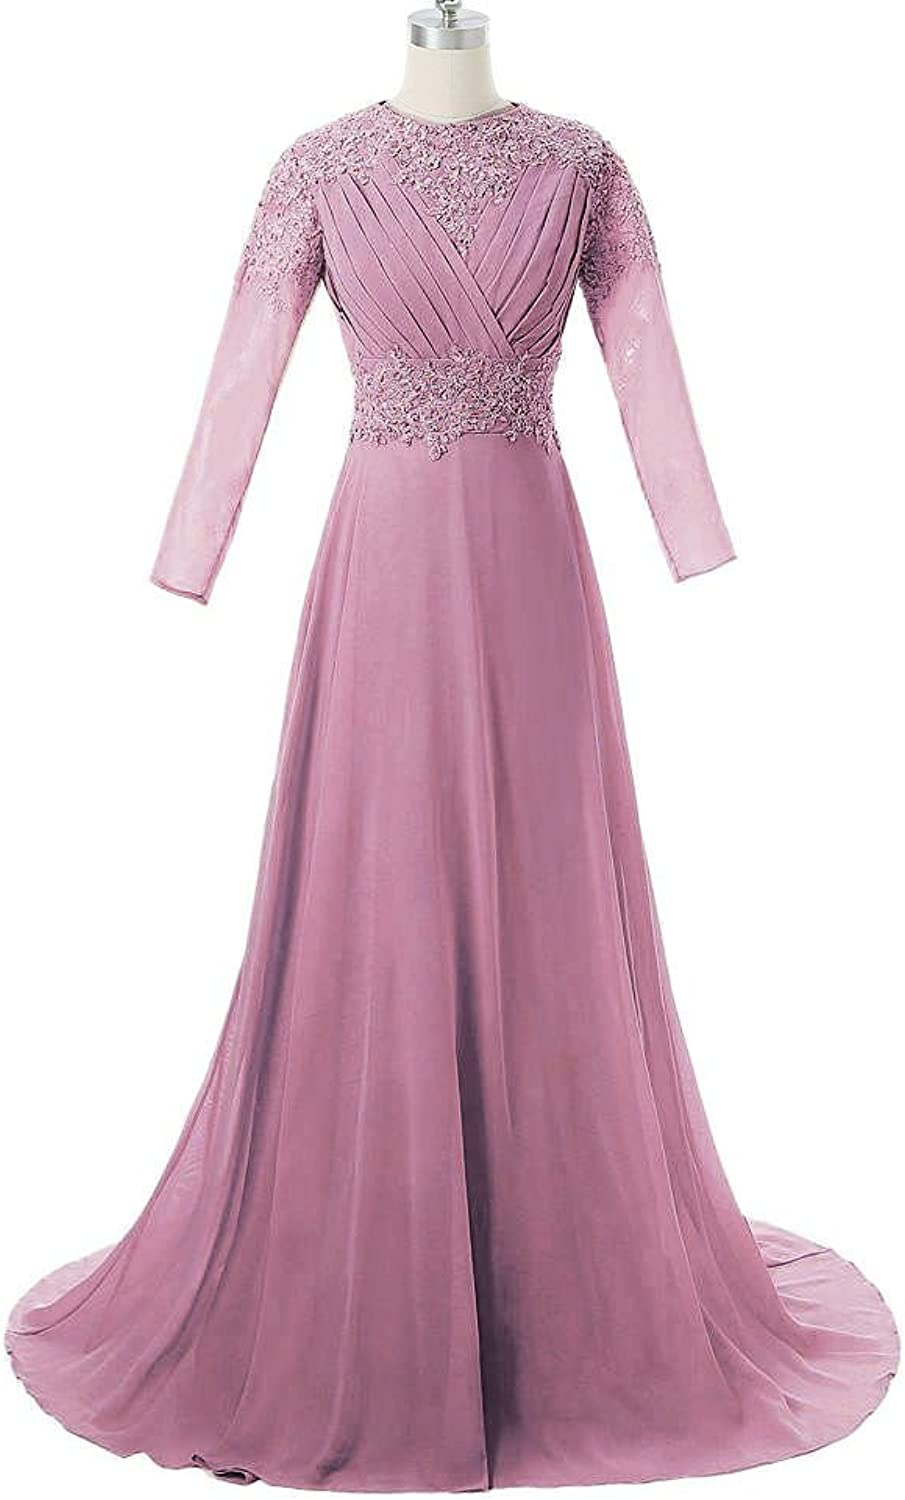 DINGZAN 2018 Bridesmaid Mother of the Bride Dresses with Long Sleeves